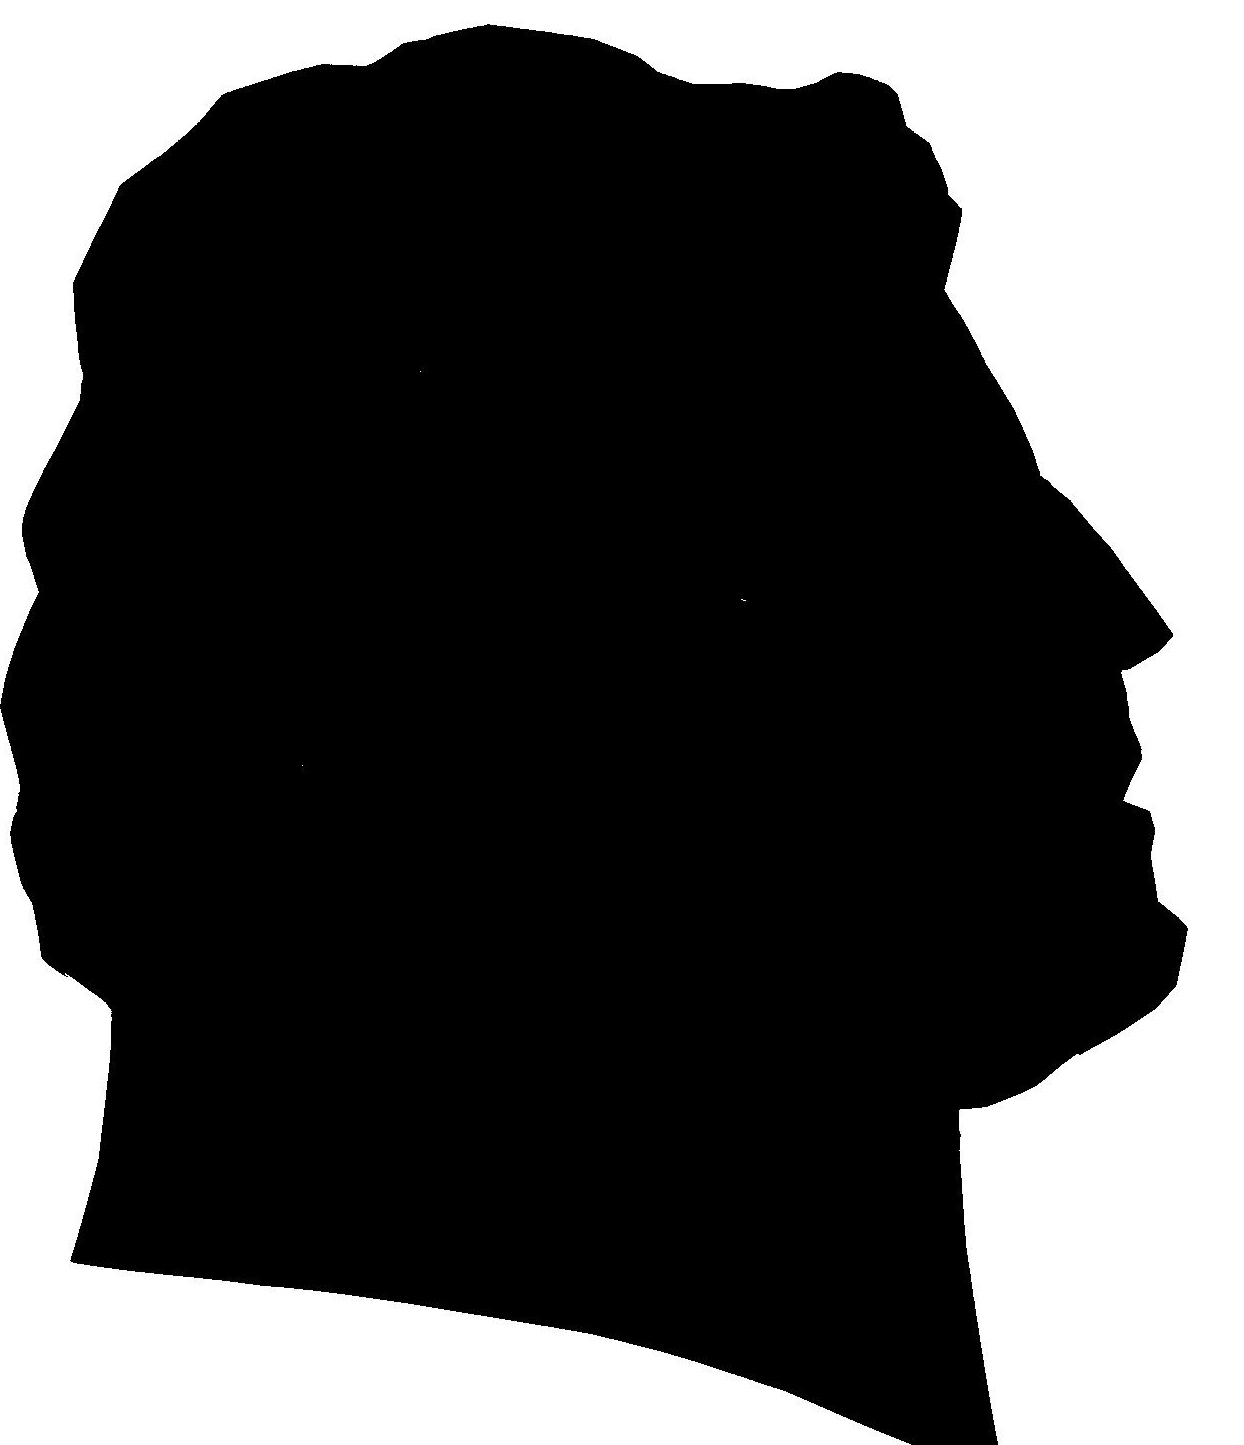 1244x1445 Playing With Shadows Silhouette Portraits And How To Make Them